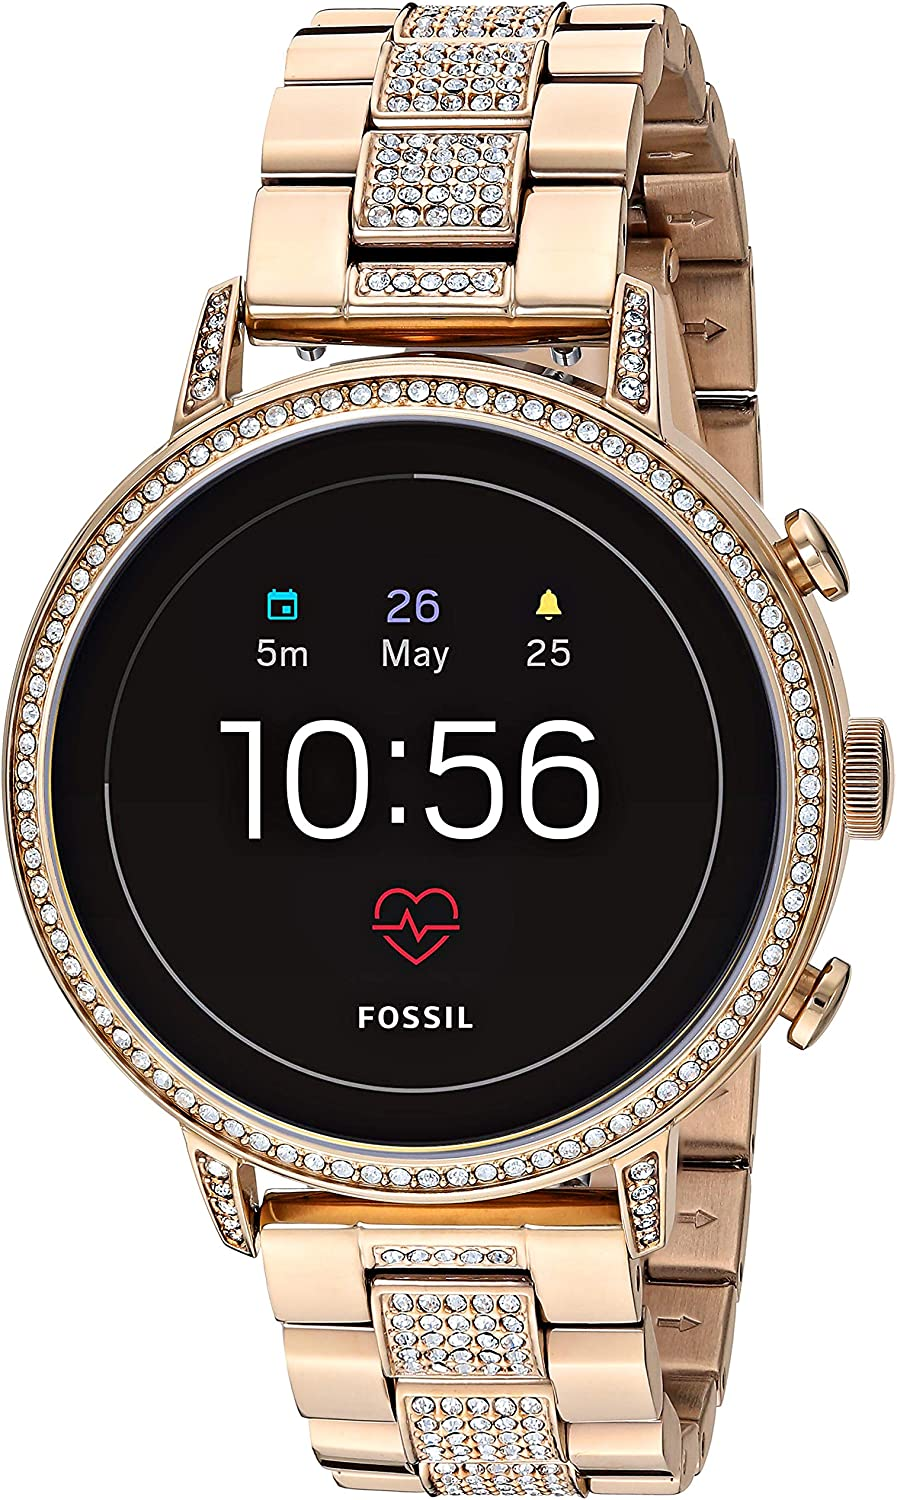 Fossil Women's Gen 4 Venture HR Stainless Steel Touchscreen Smartwatch with Heart Rate, GPS, NFC, and Smartphone Notifications